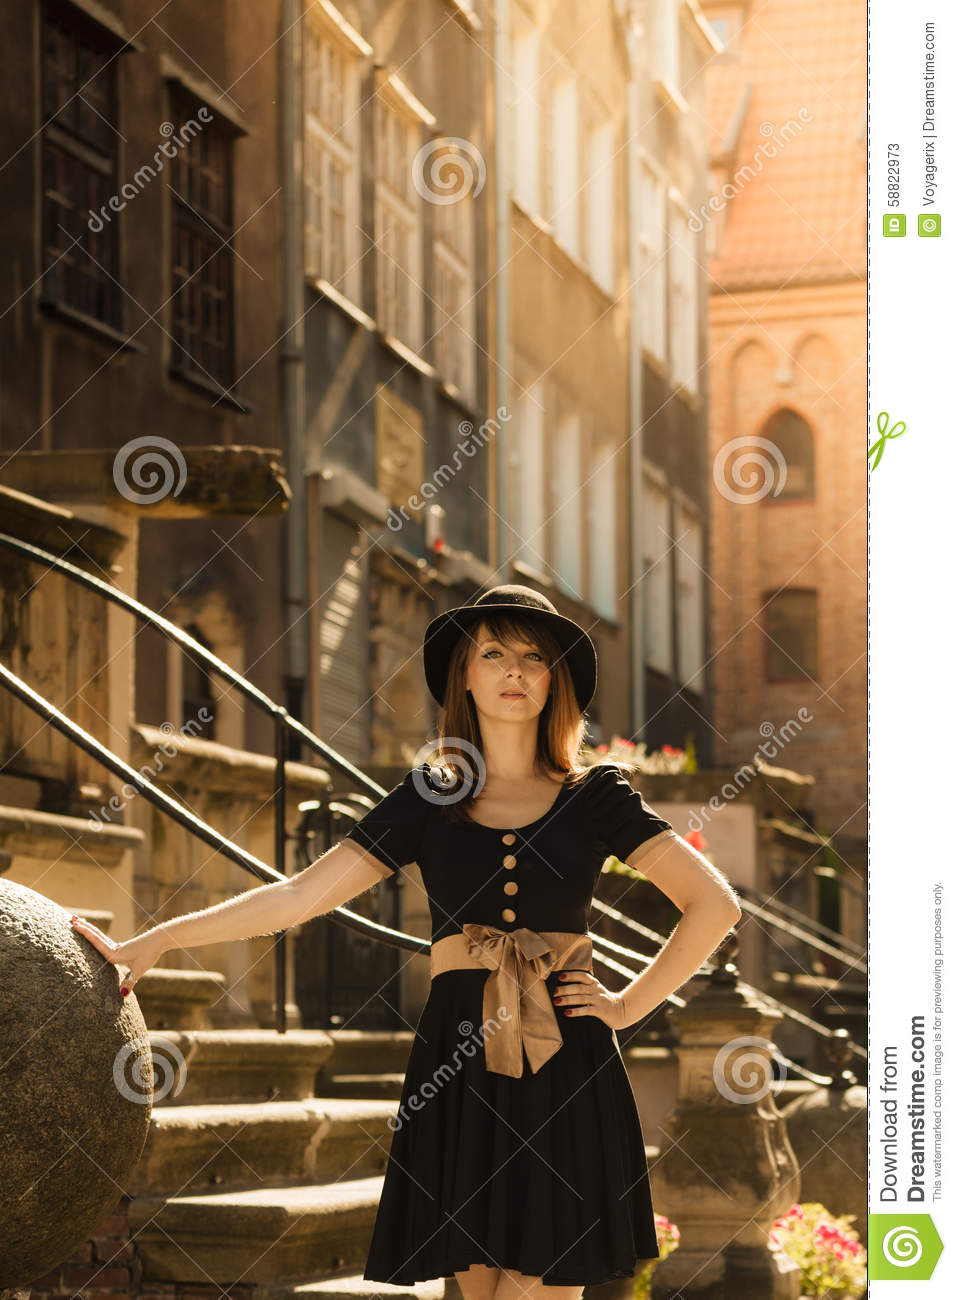 Retro Style Fashion Woman In Old Town Stock Photo Image 58822973